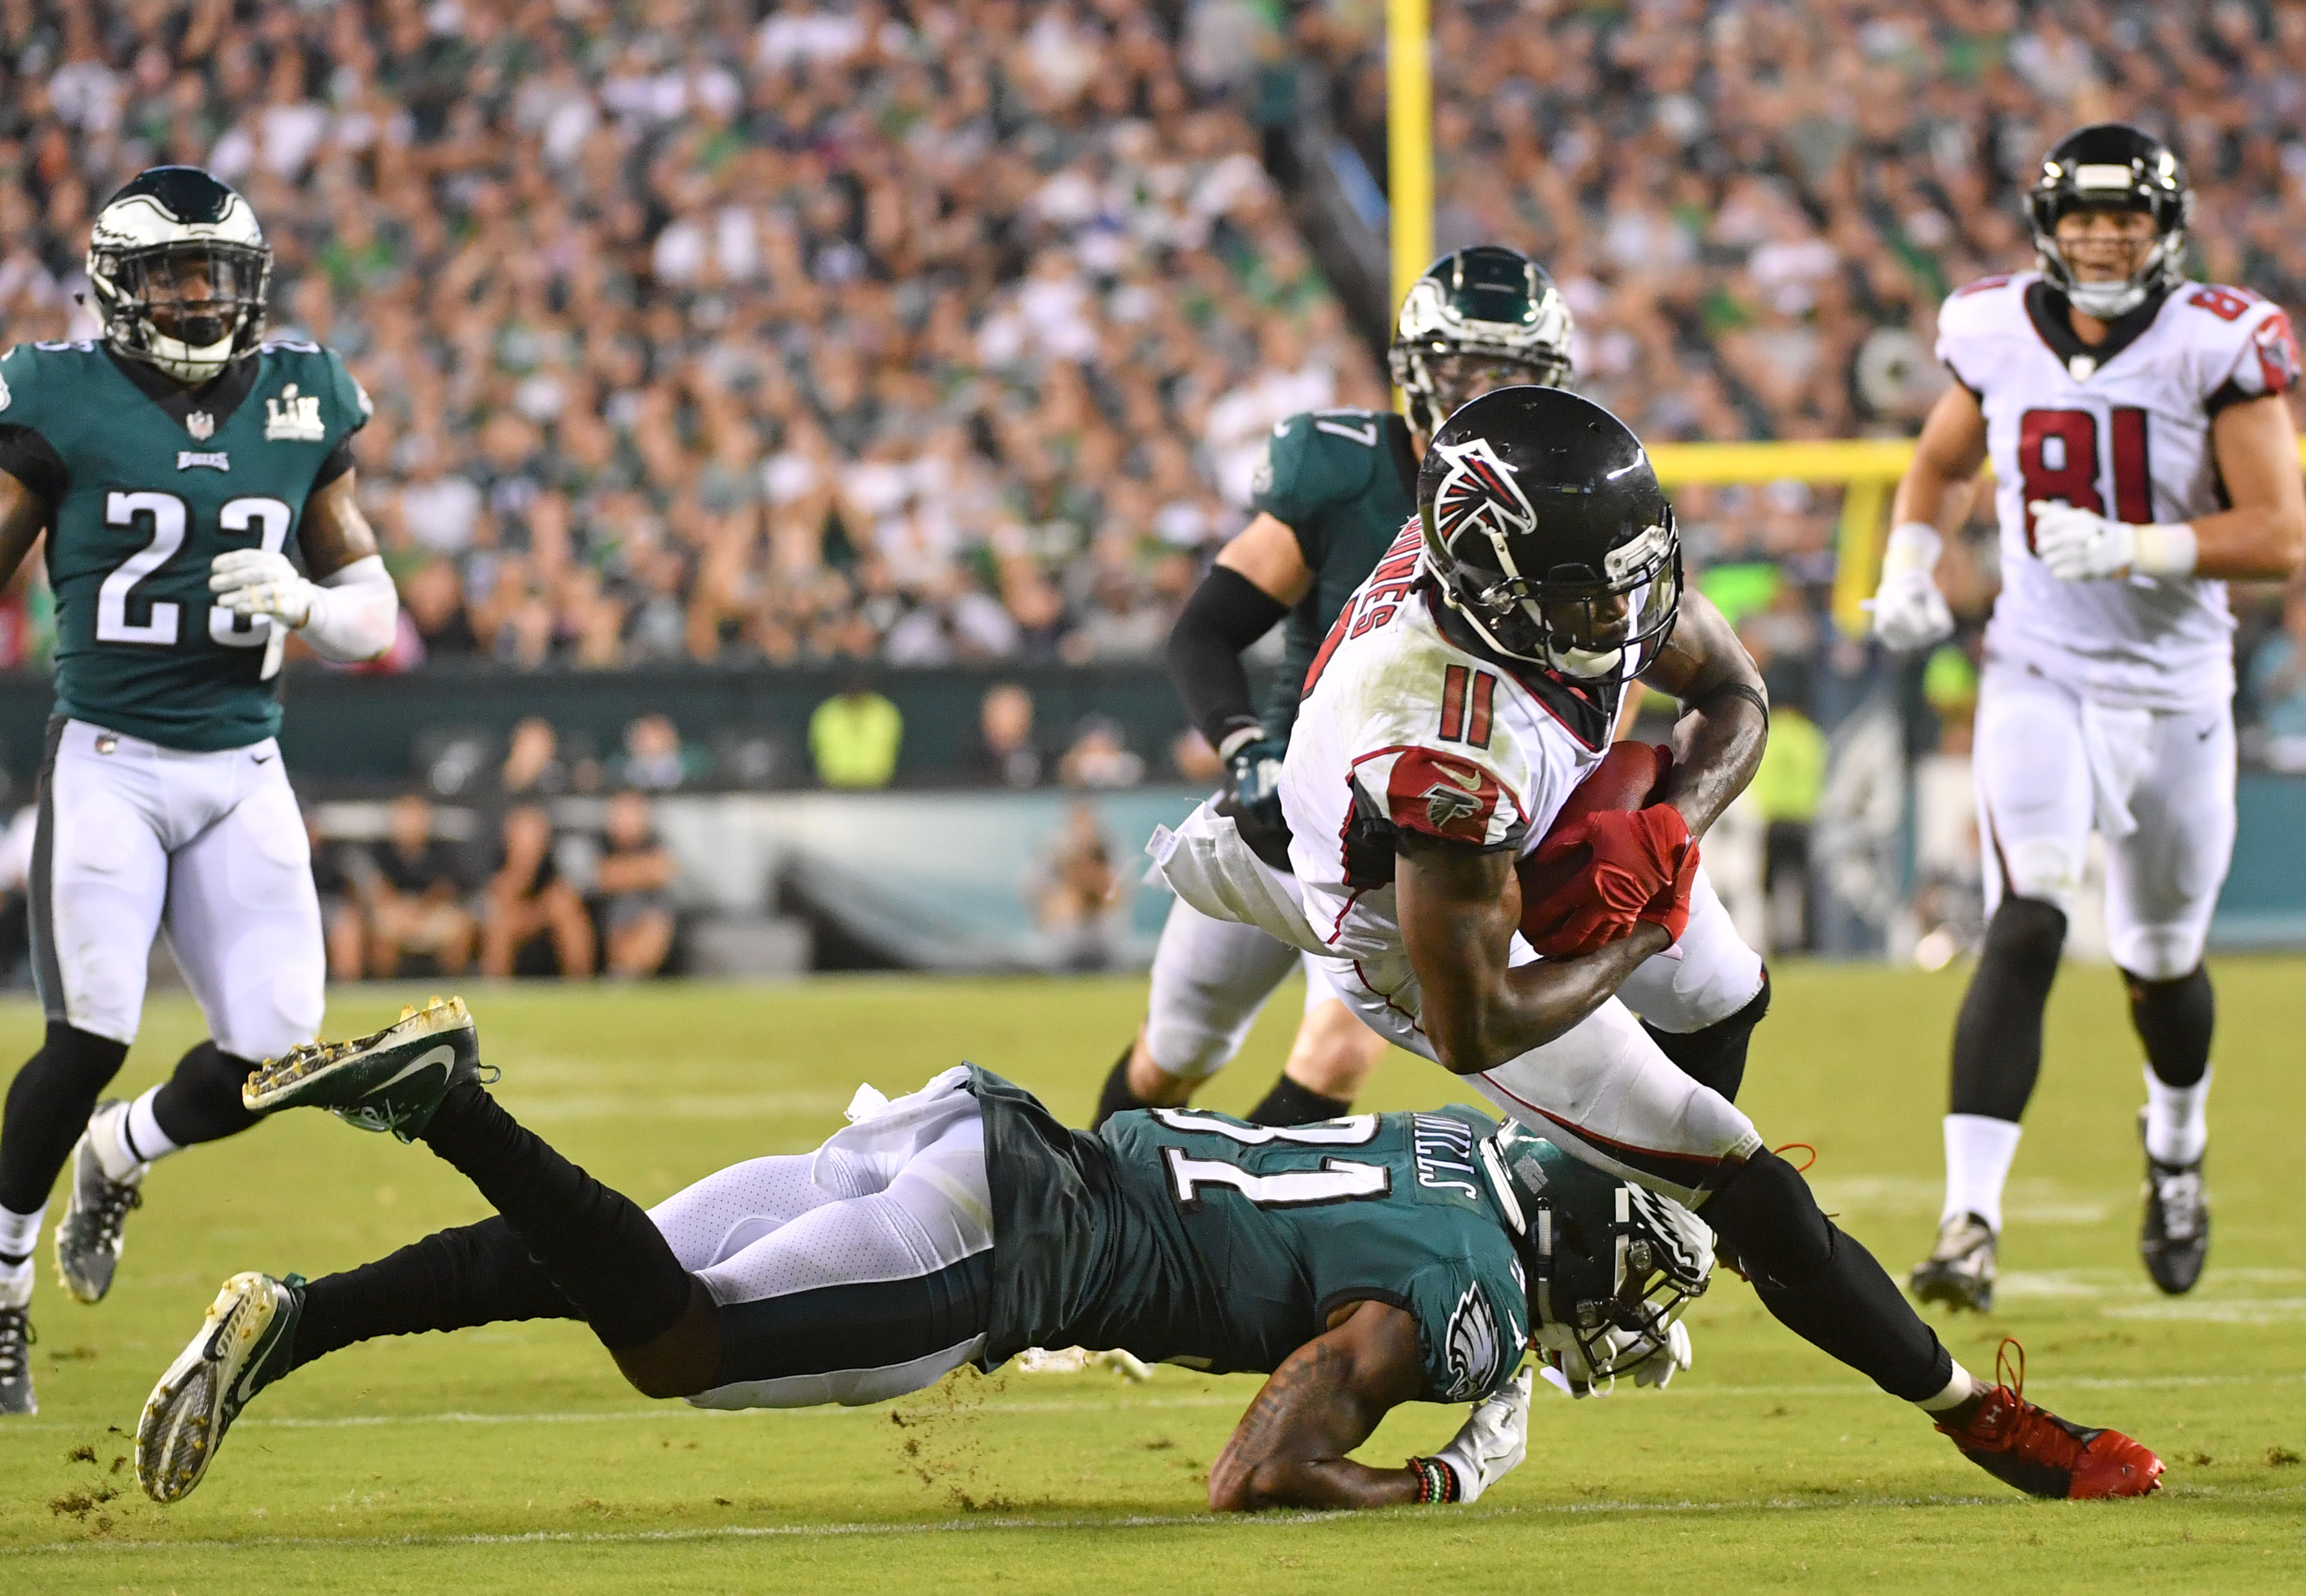 NFL: Atlanta Falcons at Philadelphia Eagles